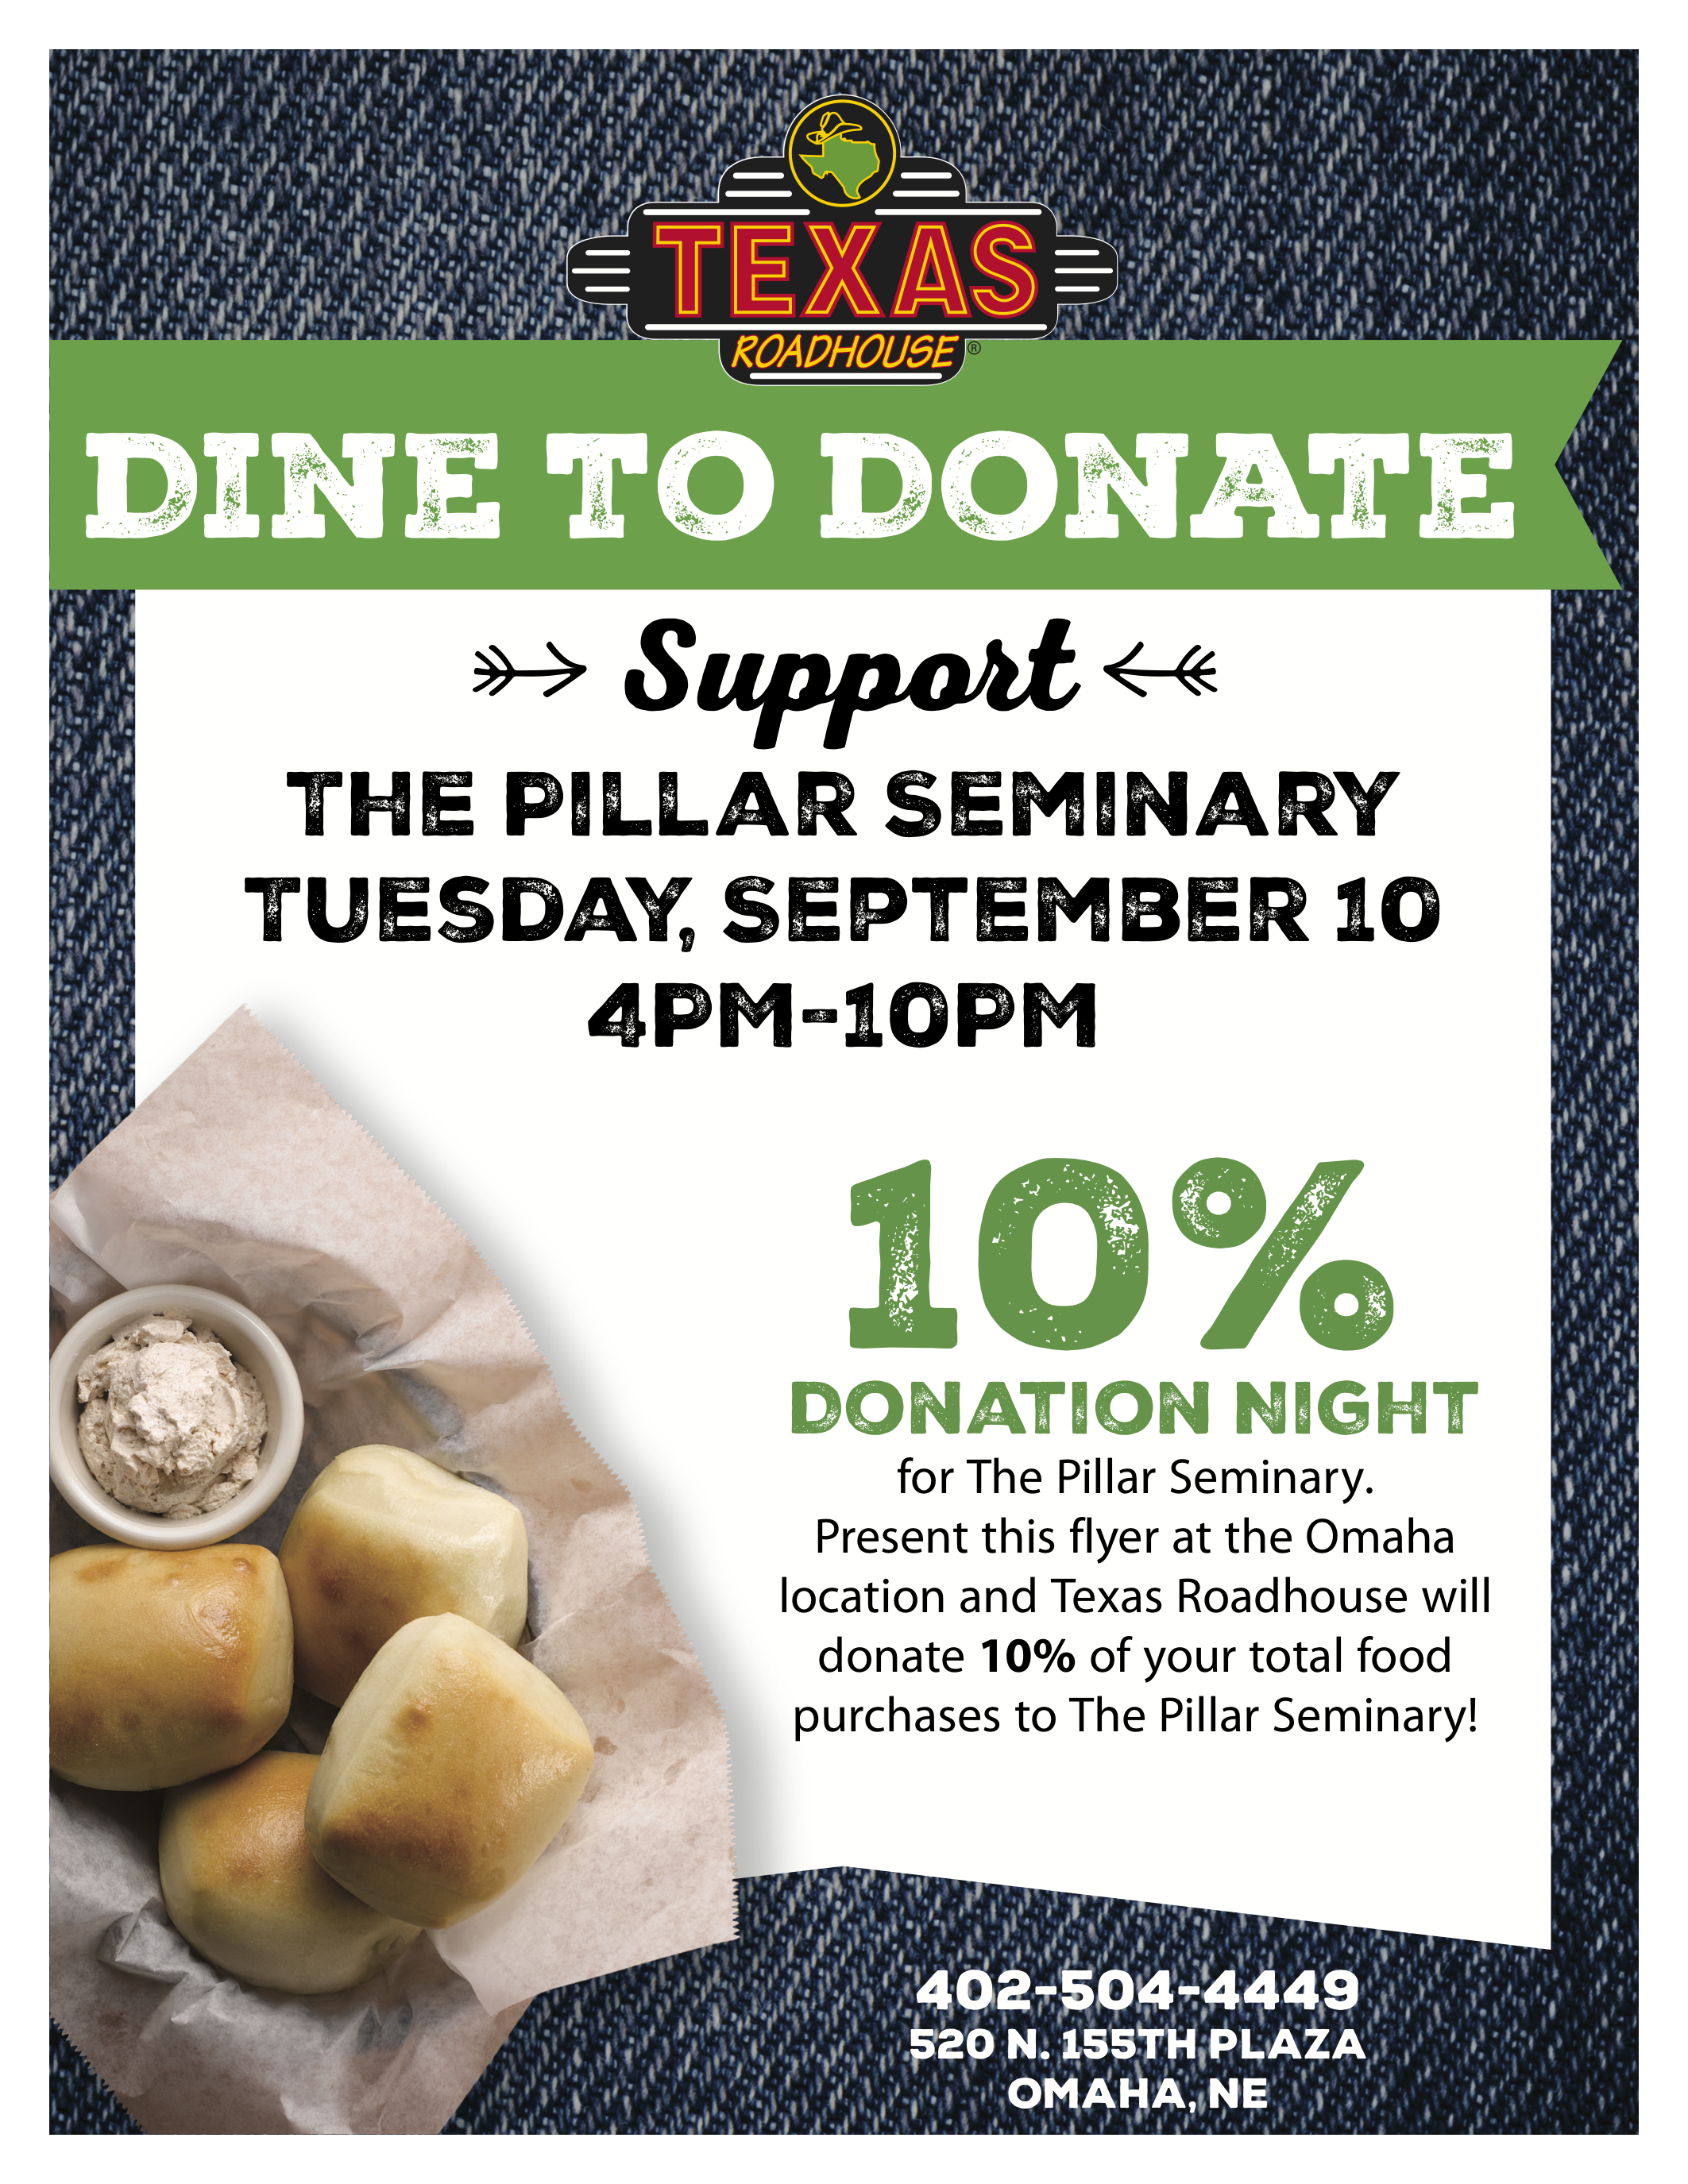 dine to donate september 10 png.png